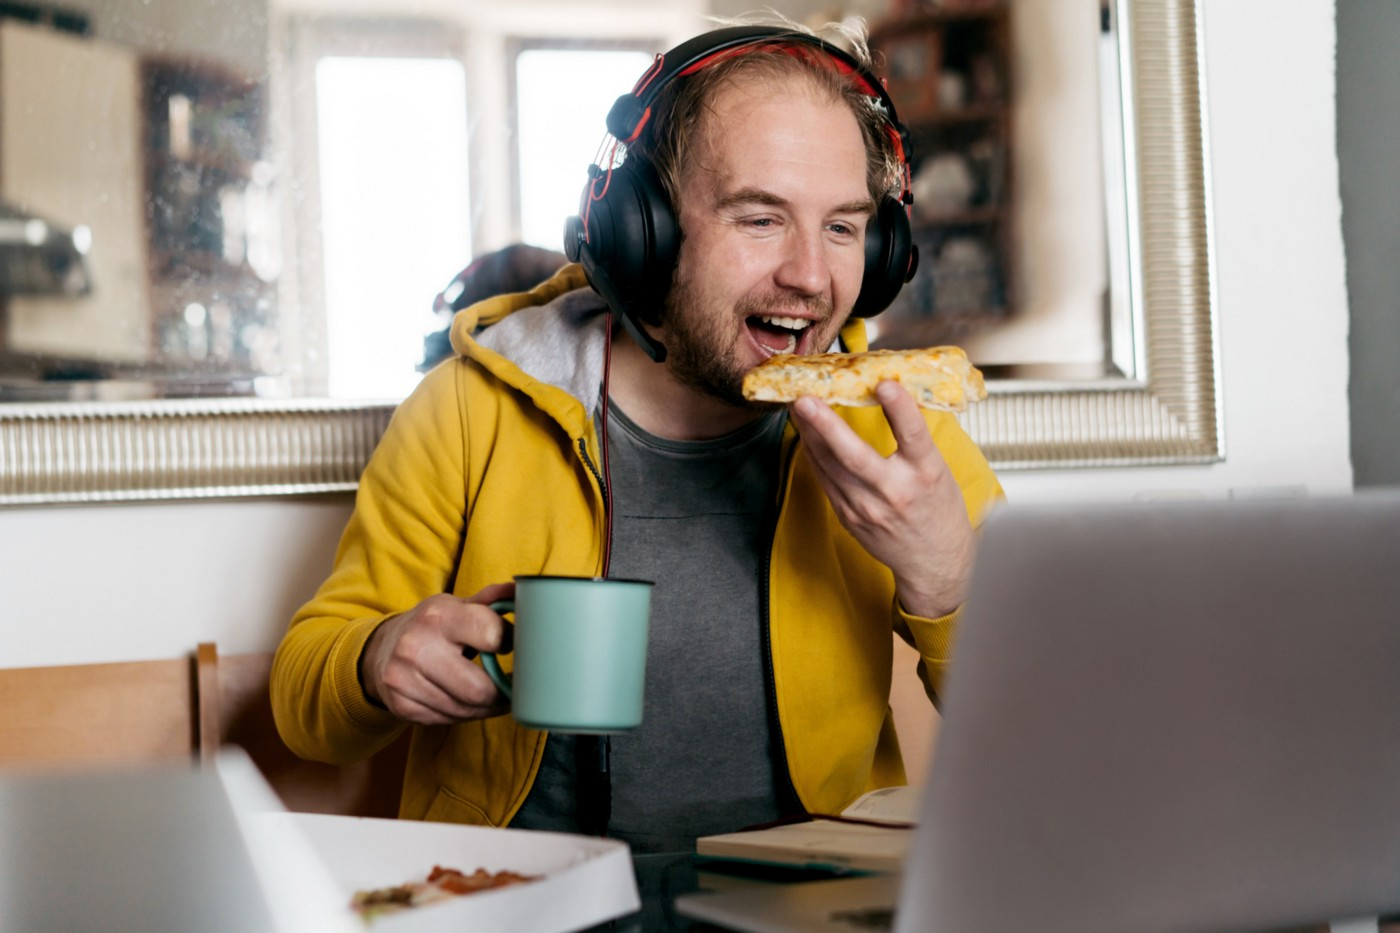 A photo of a man eating pizza and laughing while on a video call.